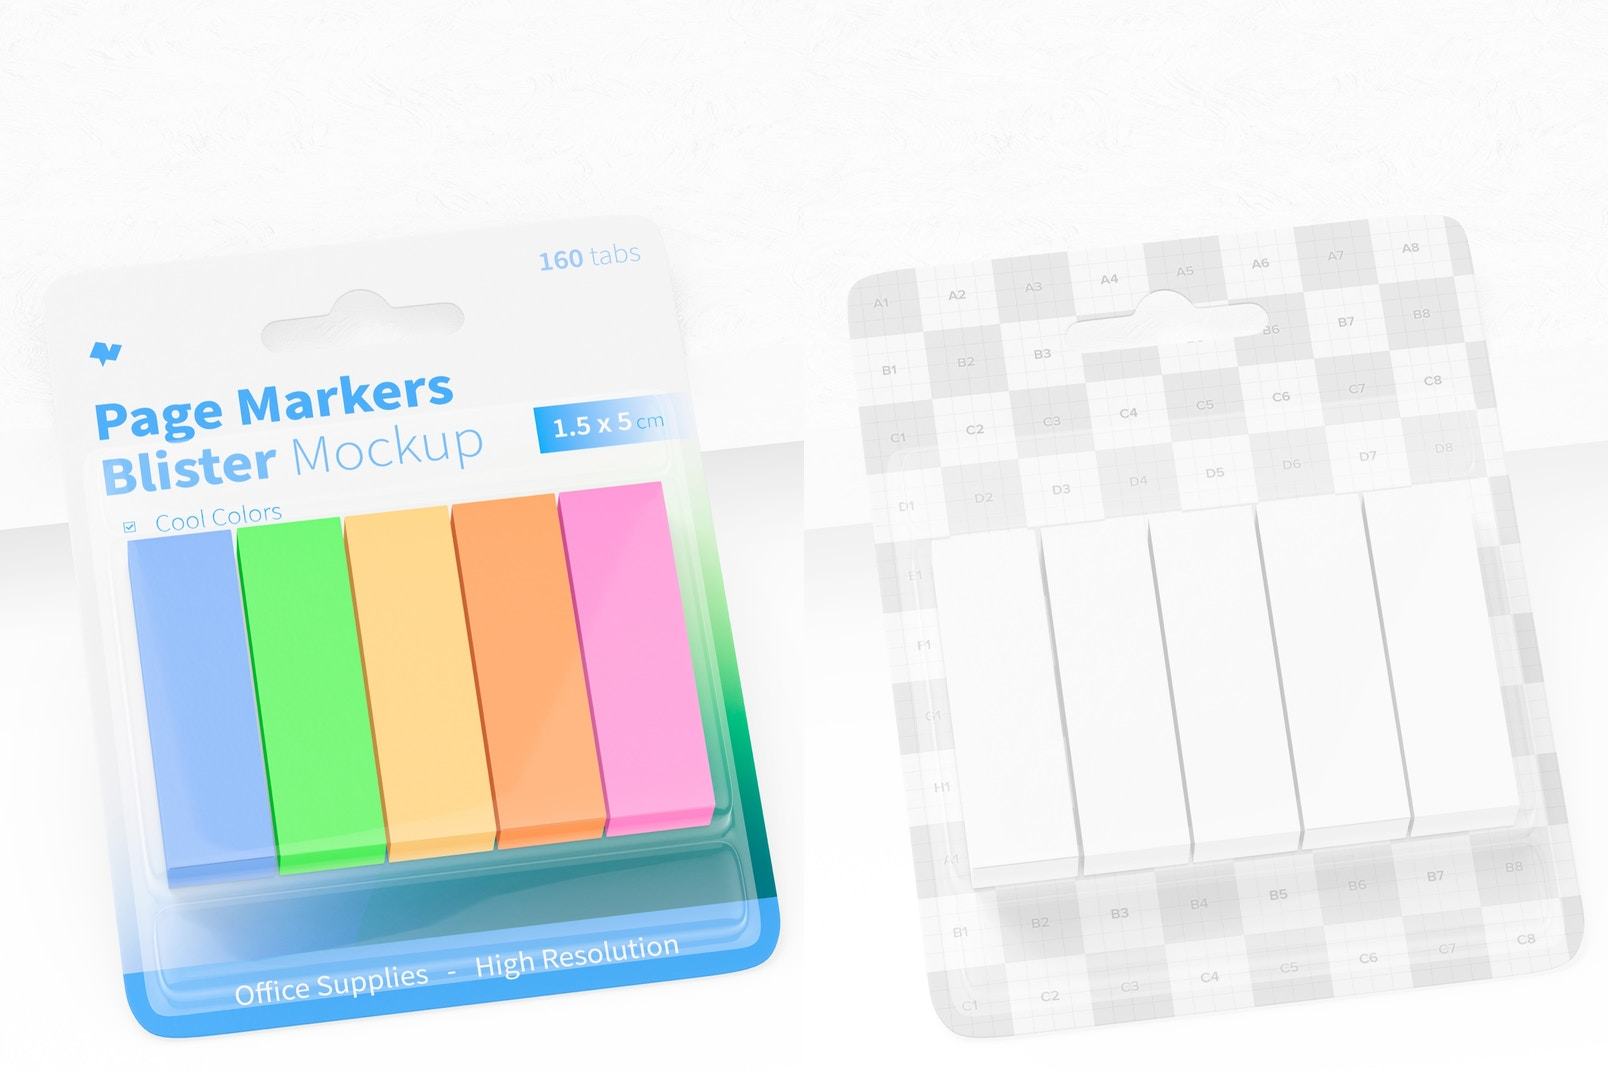 Page Markers Blister Mockup, Leaned